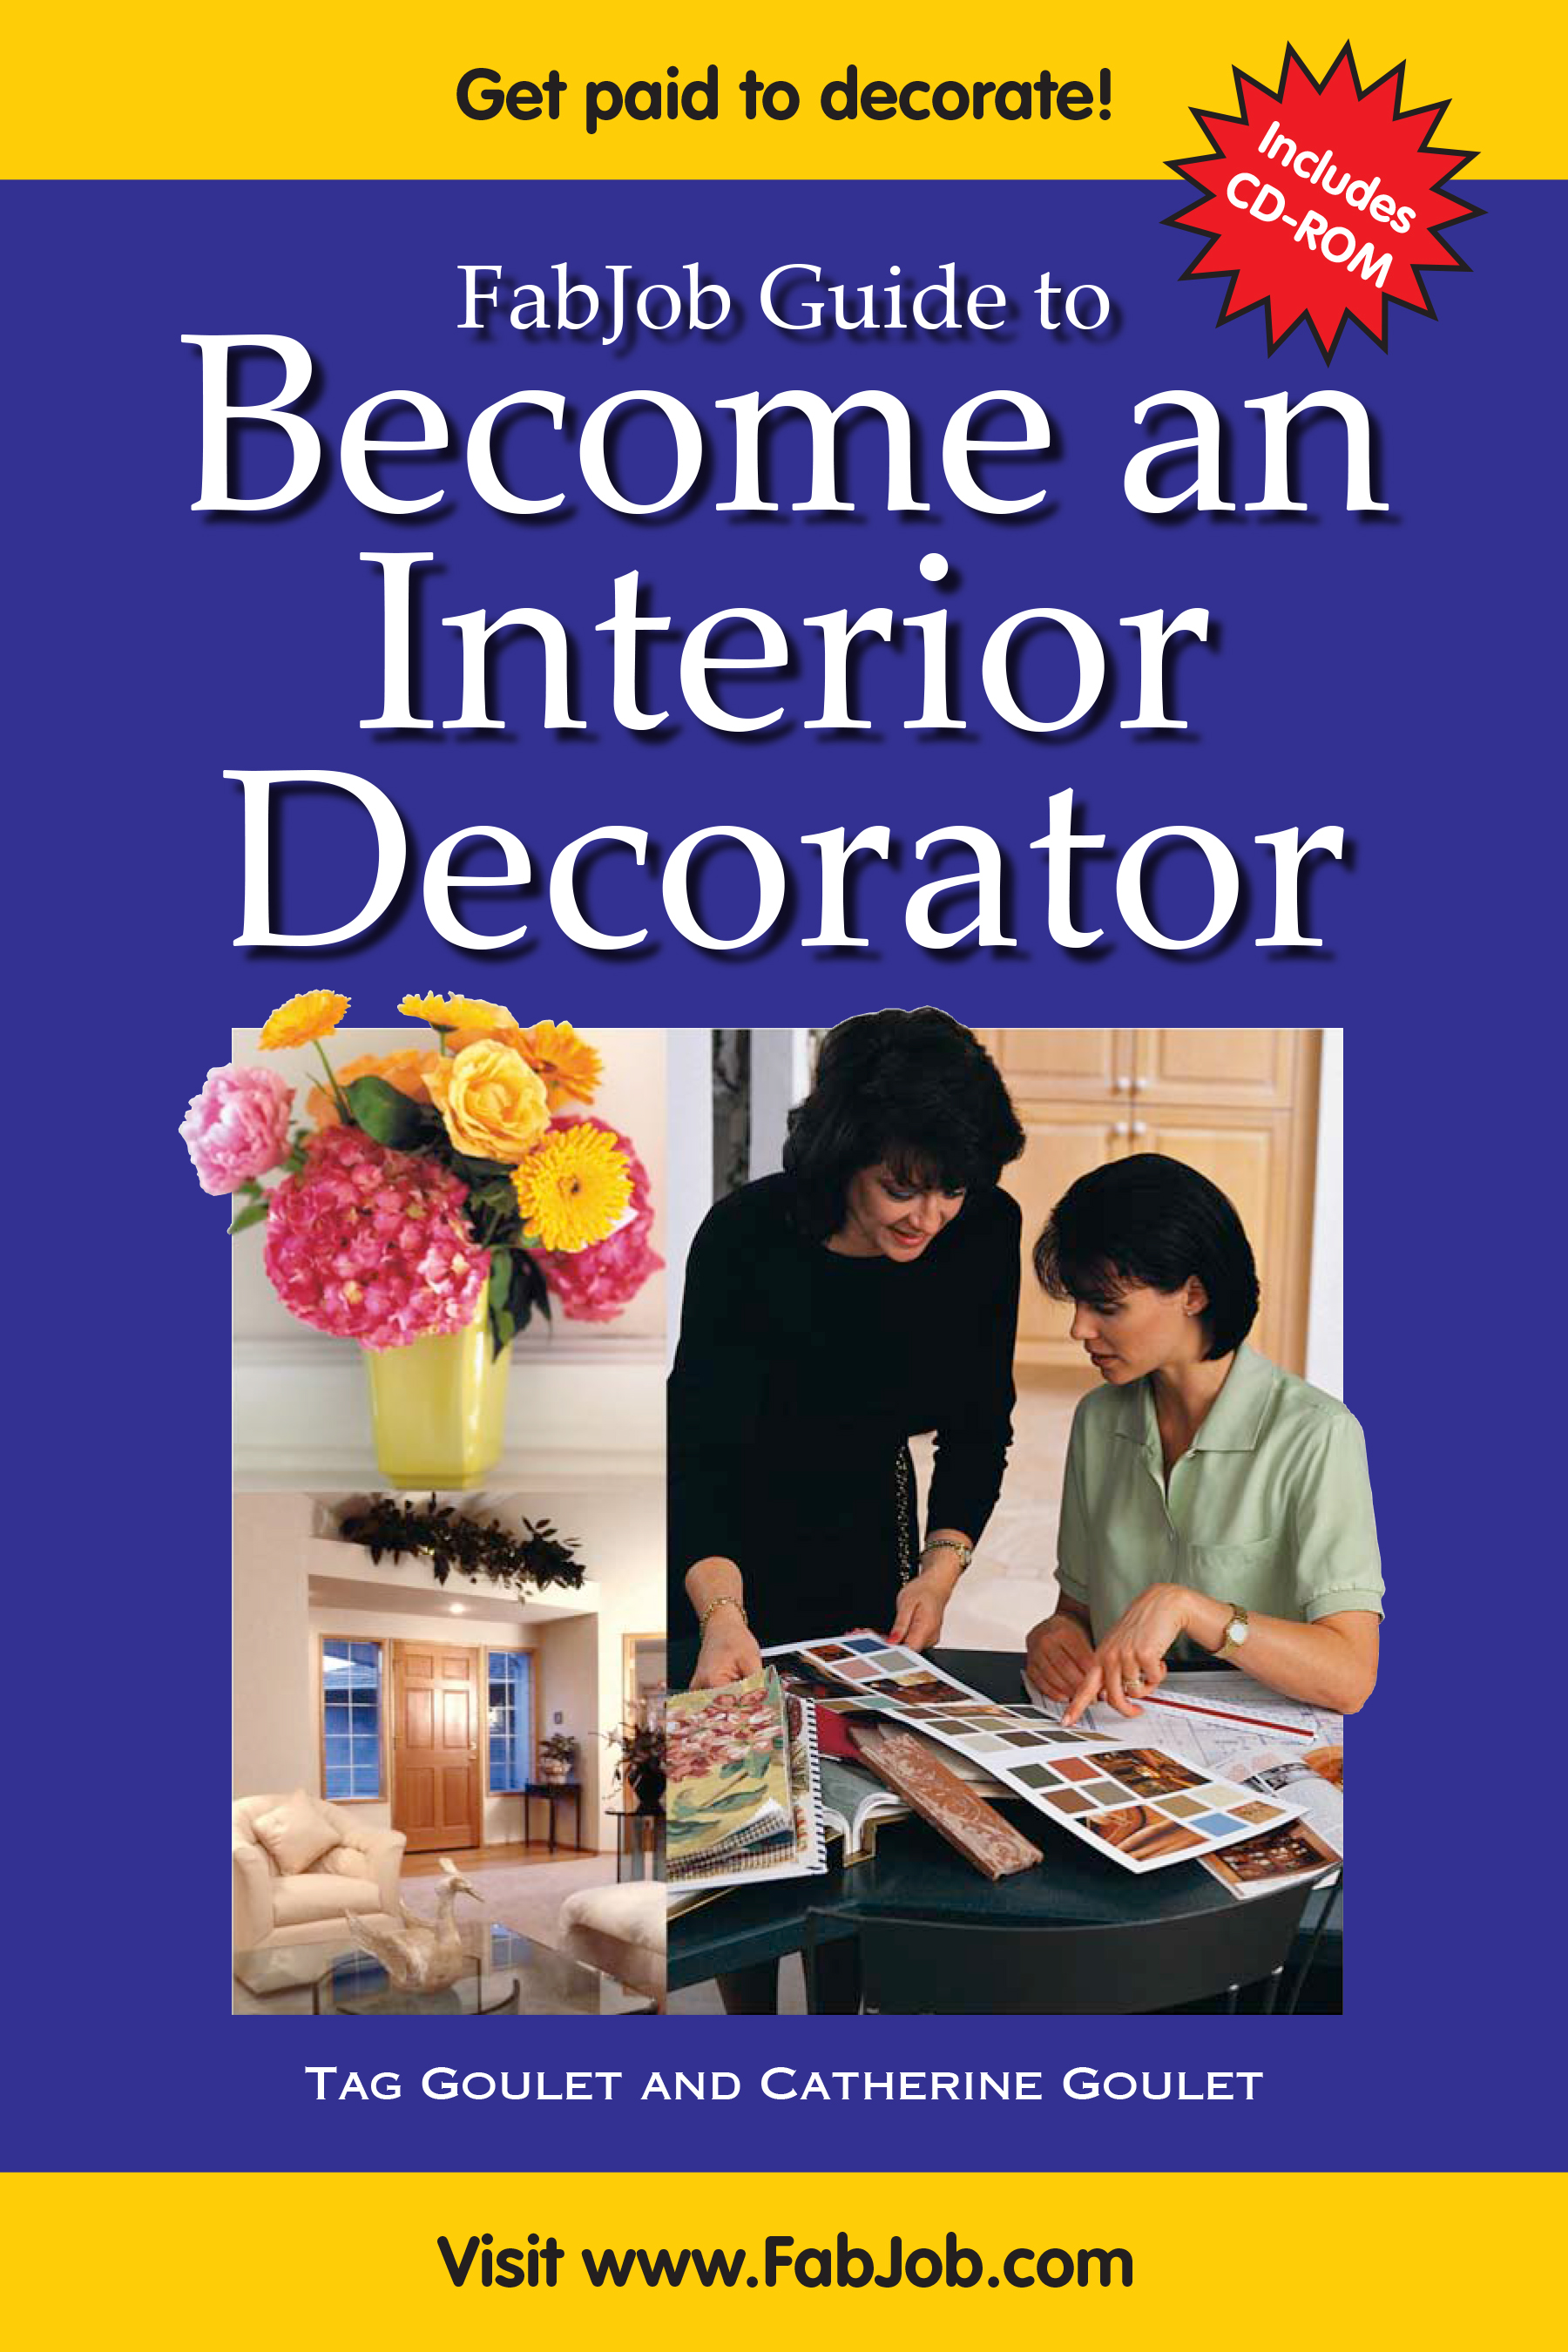 Become an Interior Decorator - Career Guides by FabJob